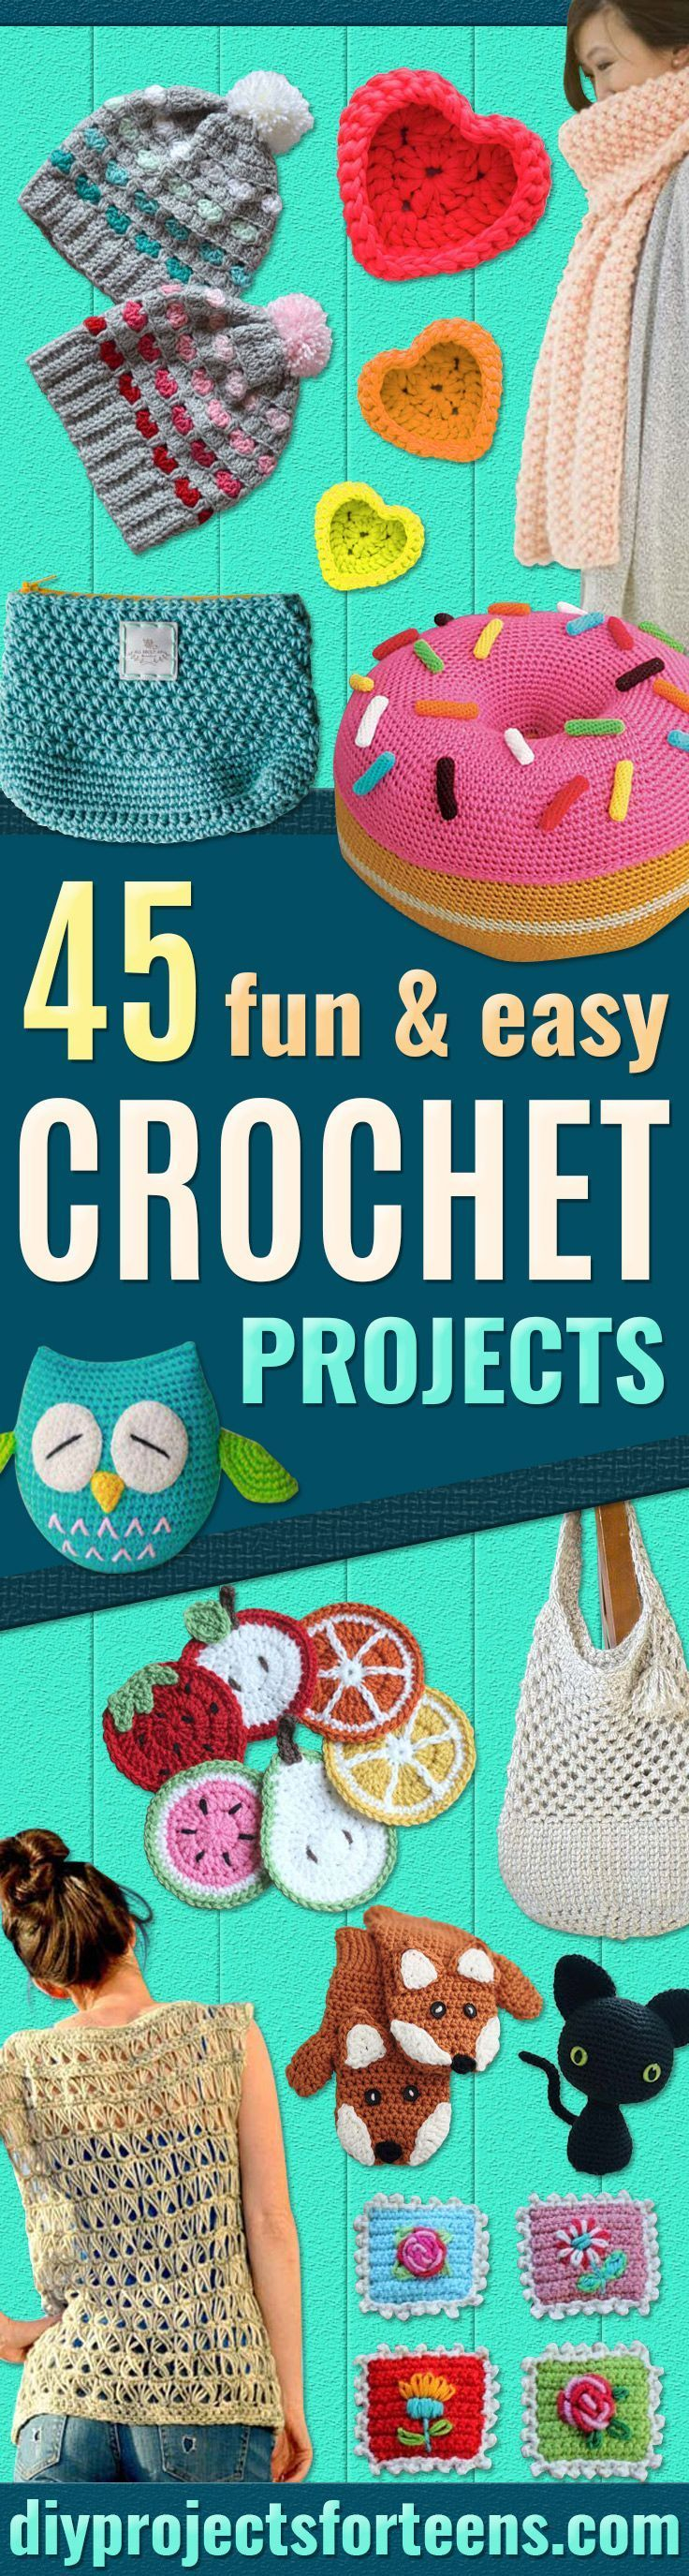 Crochet Patterns and Projects for Teens - Best Free Patterns and Tutorials for Crocheting Cute DIY Gifts, Room Decor and Accessories - How To for Beginners - Learn How To Make a Headband, Scarf, Hat, Animals and Clothes DIY Projects and Crafts for Teenagers http://diyprojectsforteens.com/crochet-patterns-free